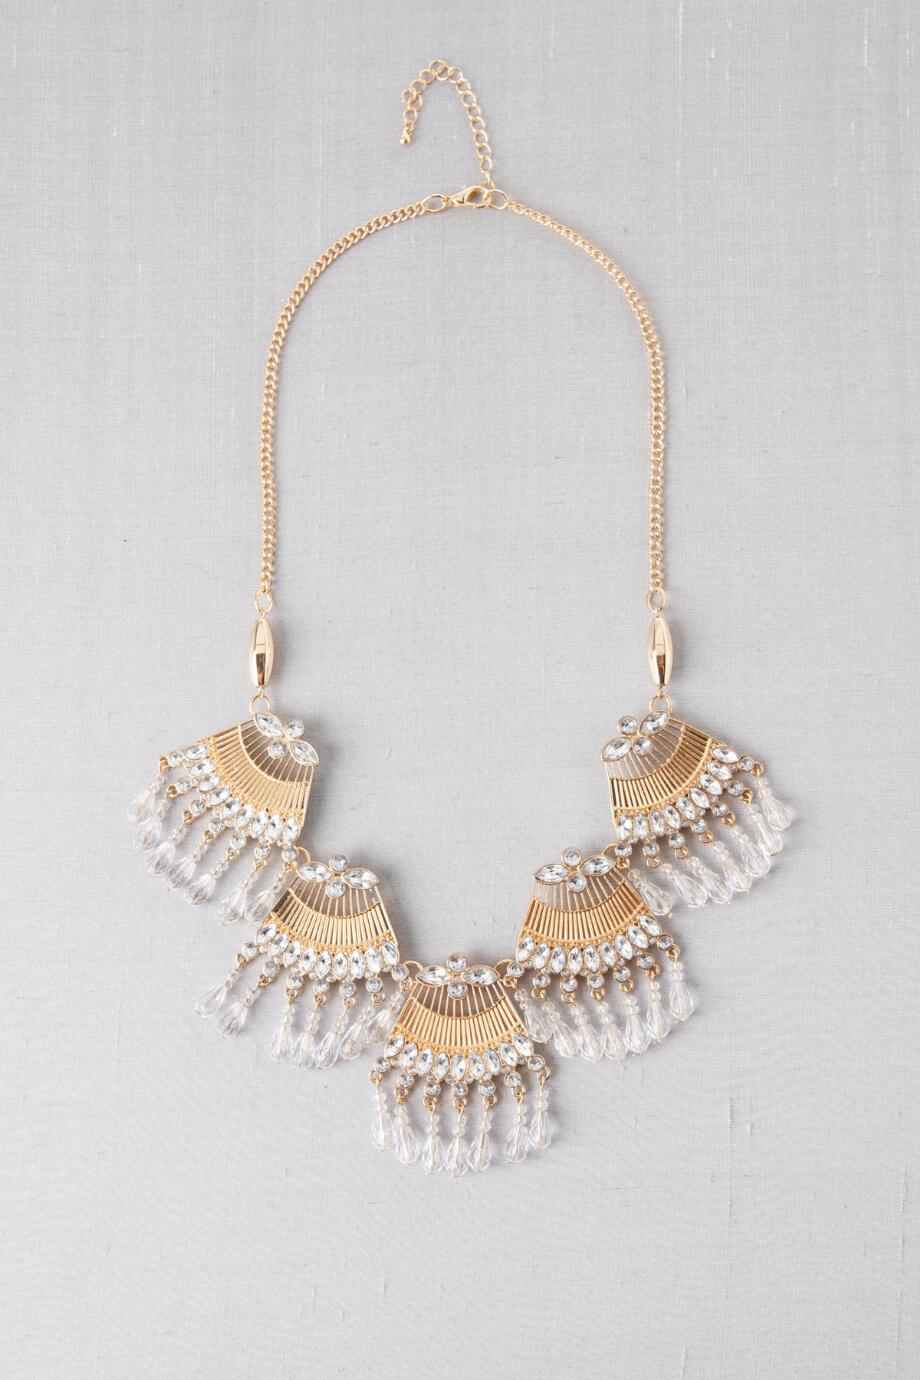 Carmona Crystal Fringe Necklace